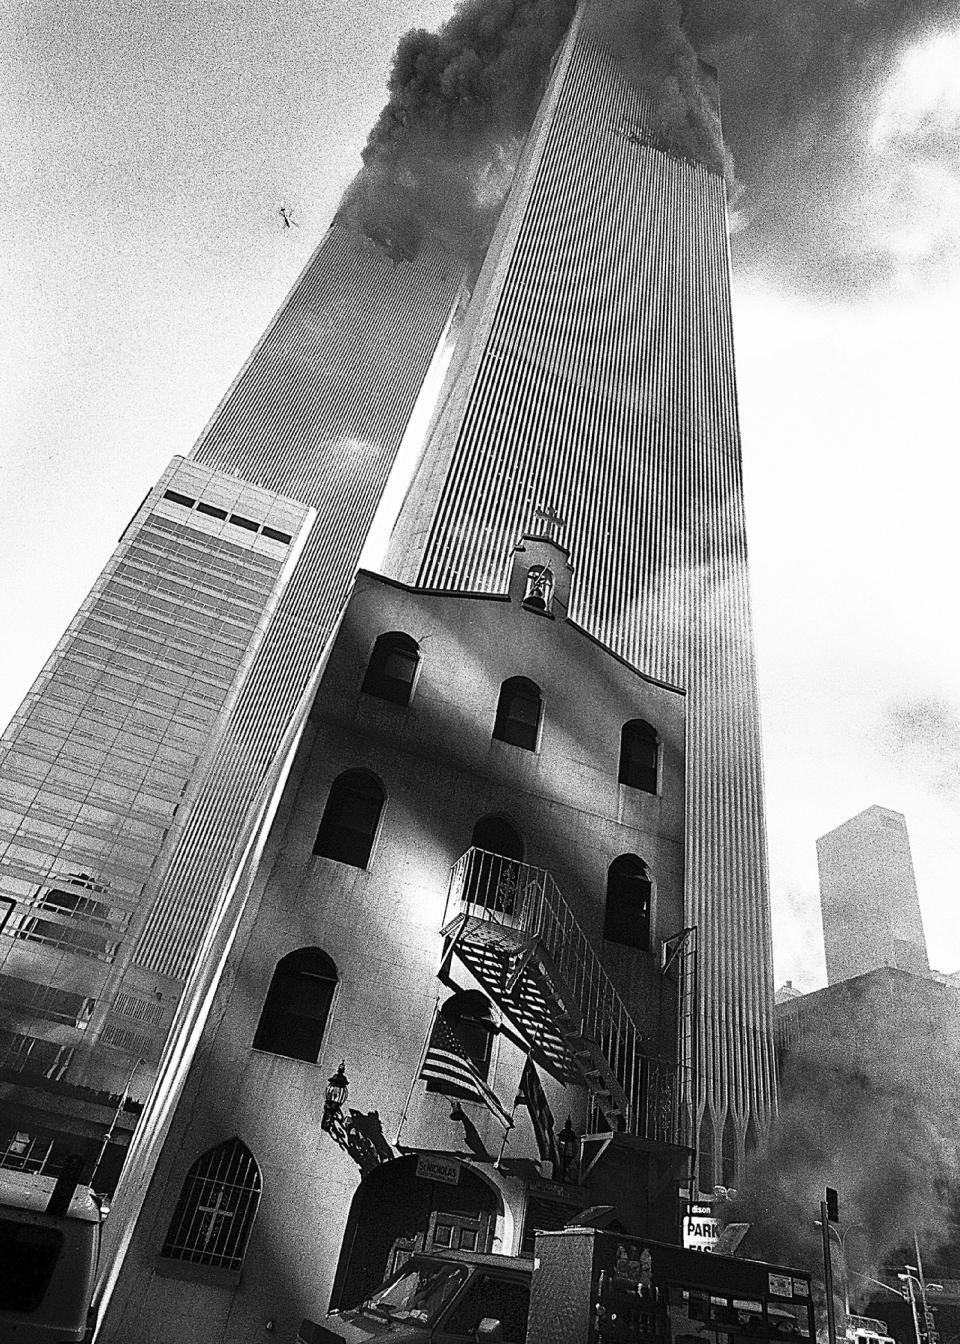 In this Sept. 11, 2001, photo provided by the Greek Orthodox Archdiocese of America, smoke billows from the World Trade Center towers as St. Nicholas Greek Orthodox Church sits below them in New York's financial district. St. Nicholas was the only house of worship destroyed in the Sept. 11, 2001 attacks. (Greek Orthodox Archdiocese of America via AP)